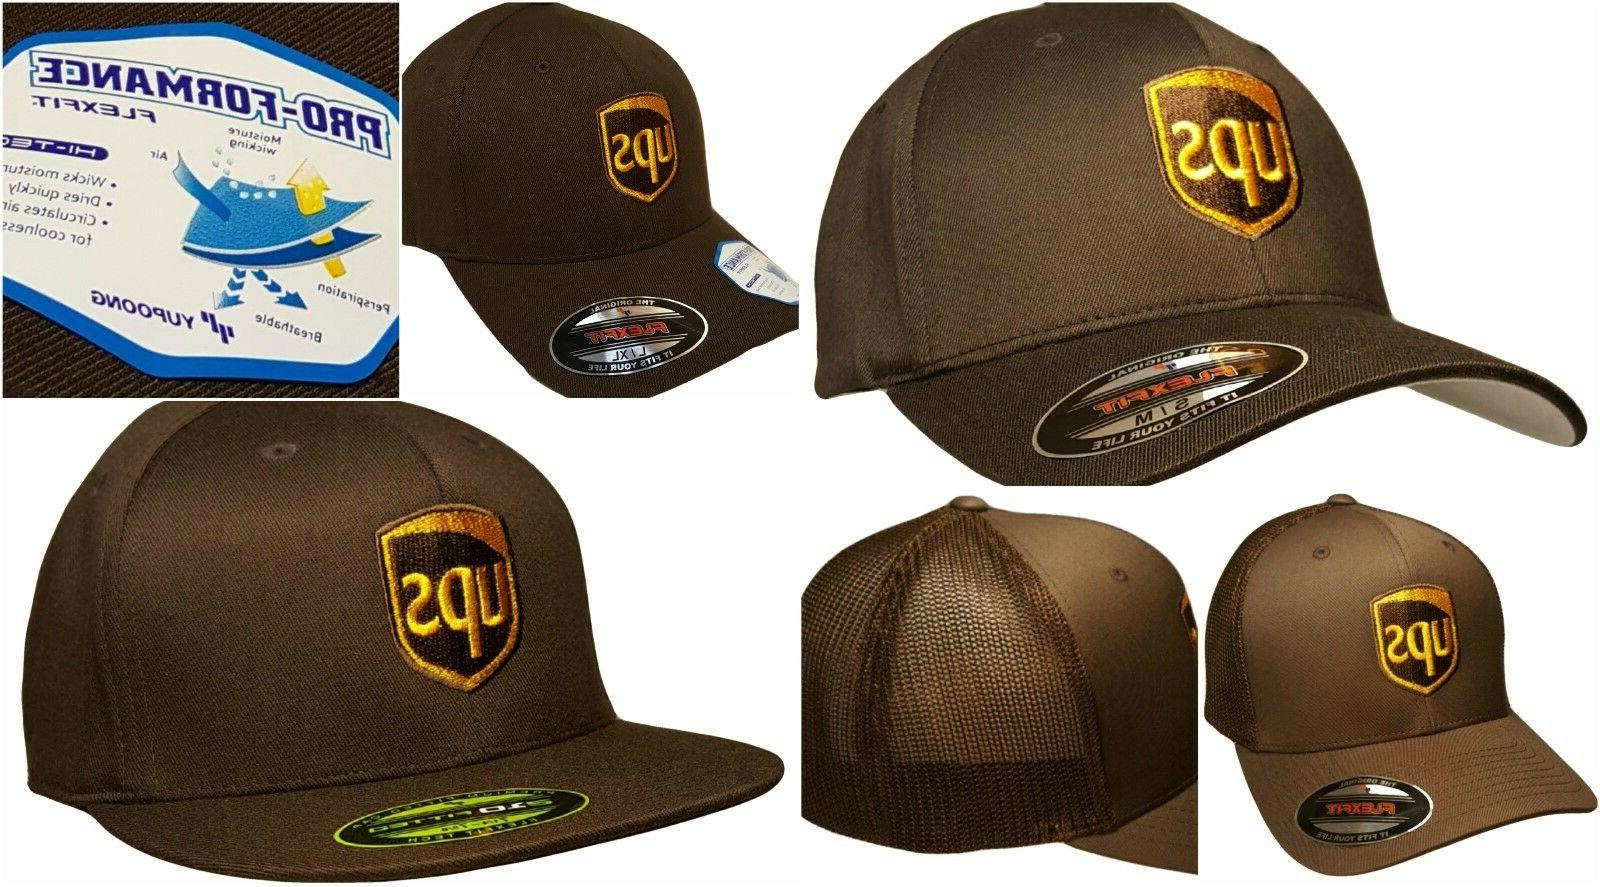 ups embroidered baseball hat many different styles